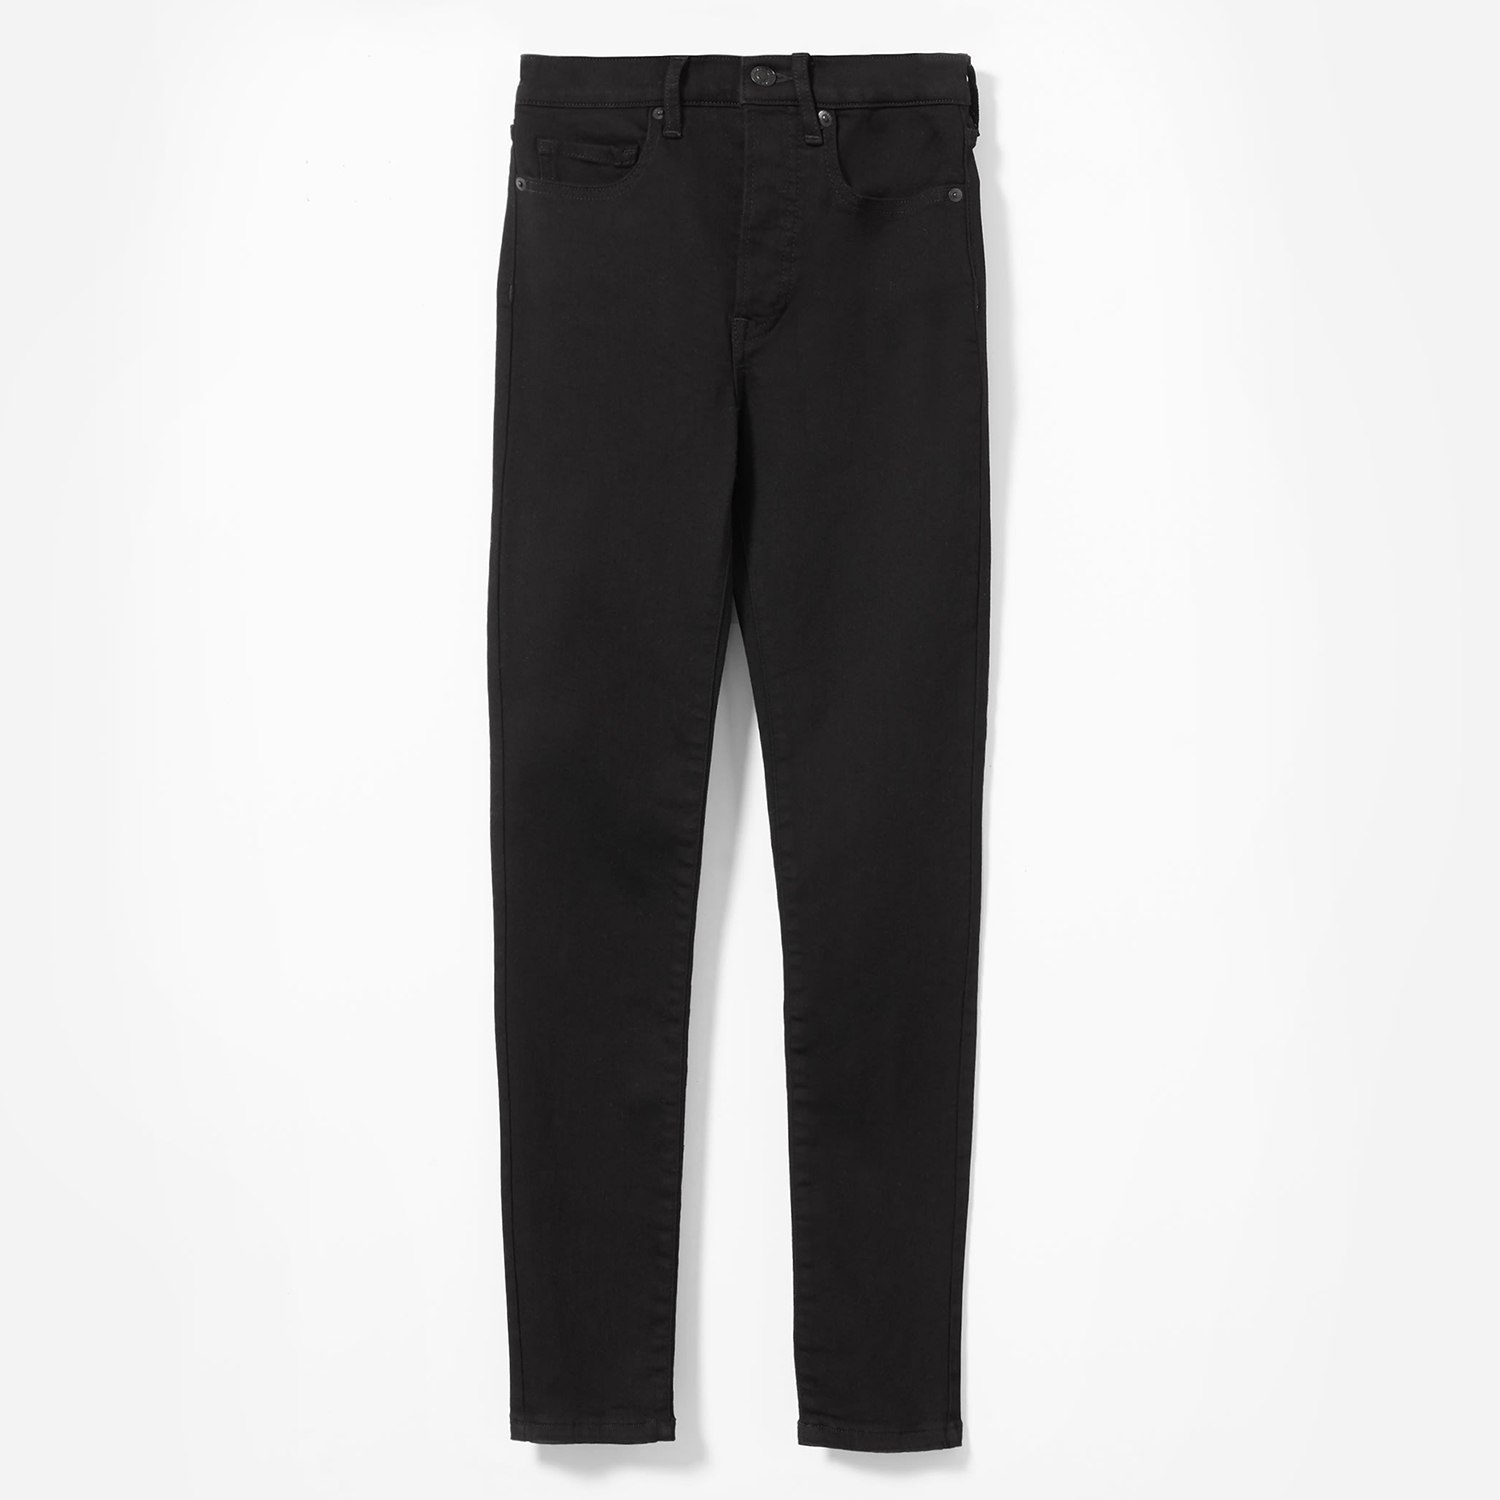 The Authentic Stretch Mid-Rise Skinny Black